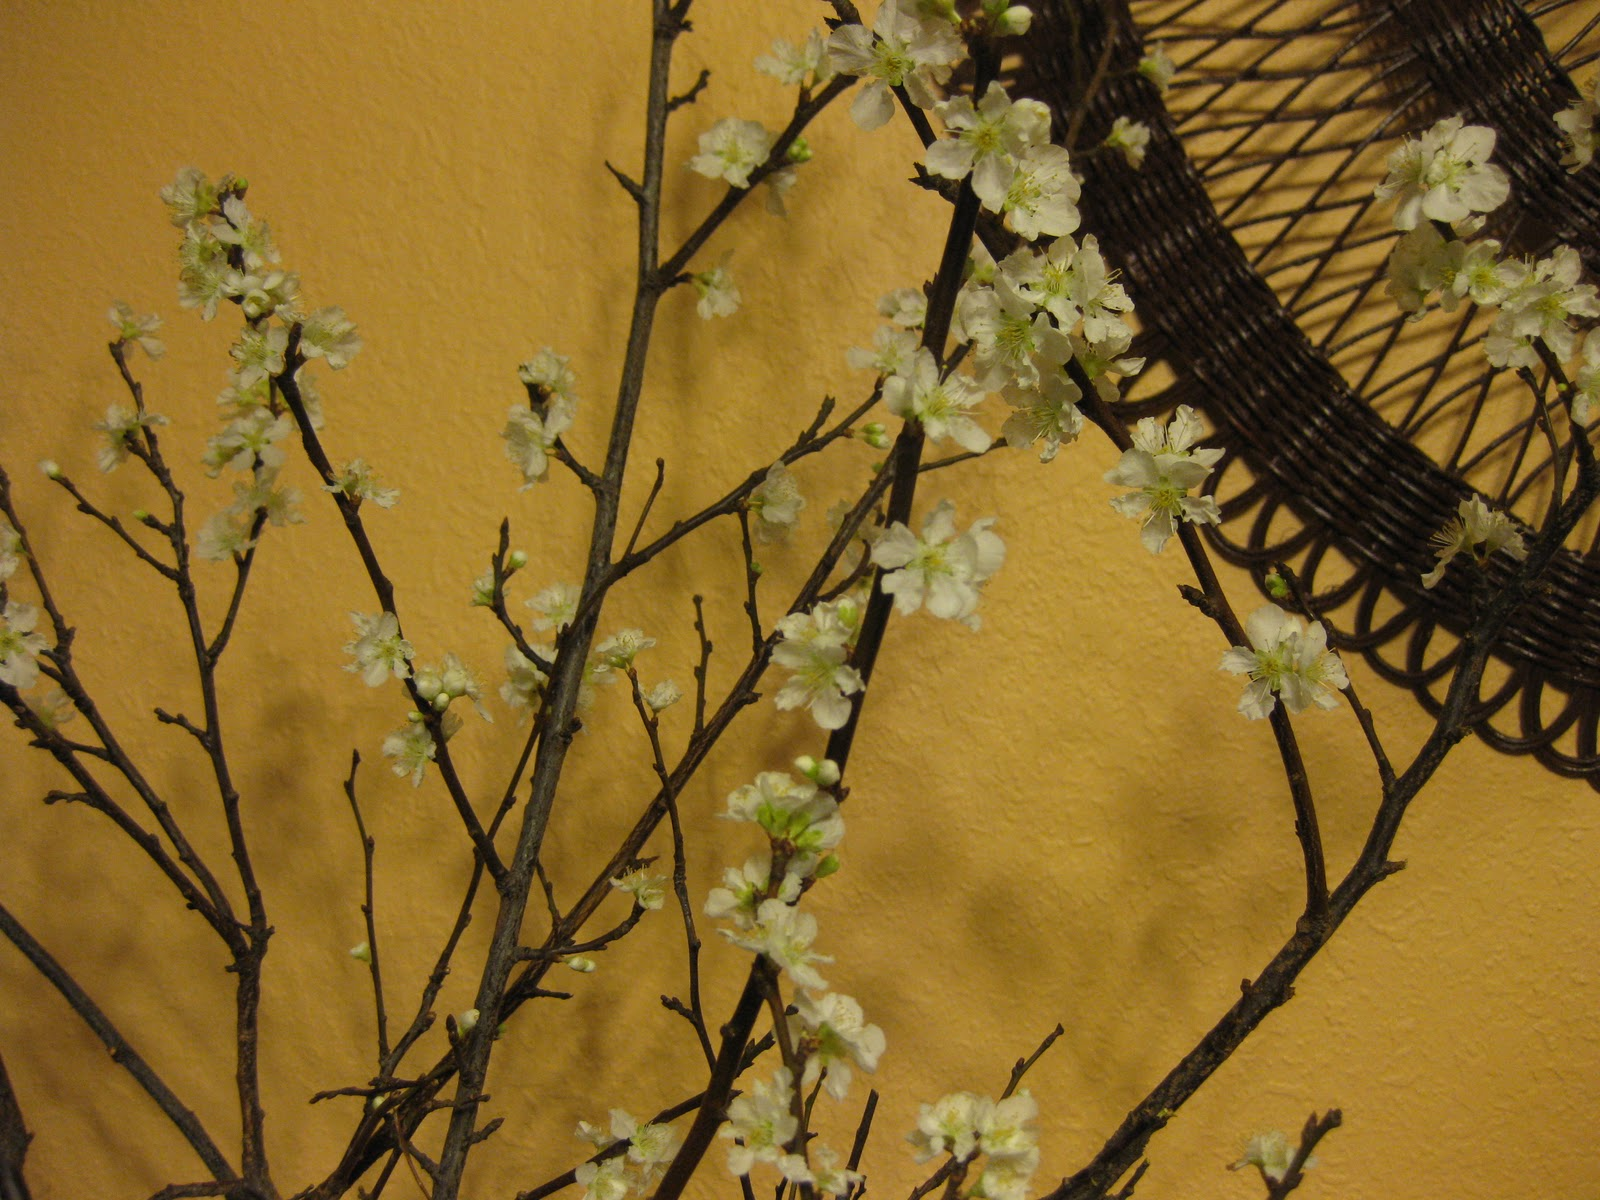 Growing A Garden In Davis: One Last Gift From the Plum Tree